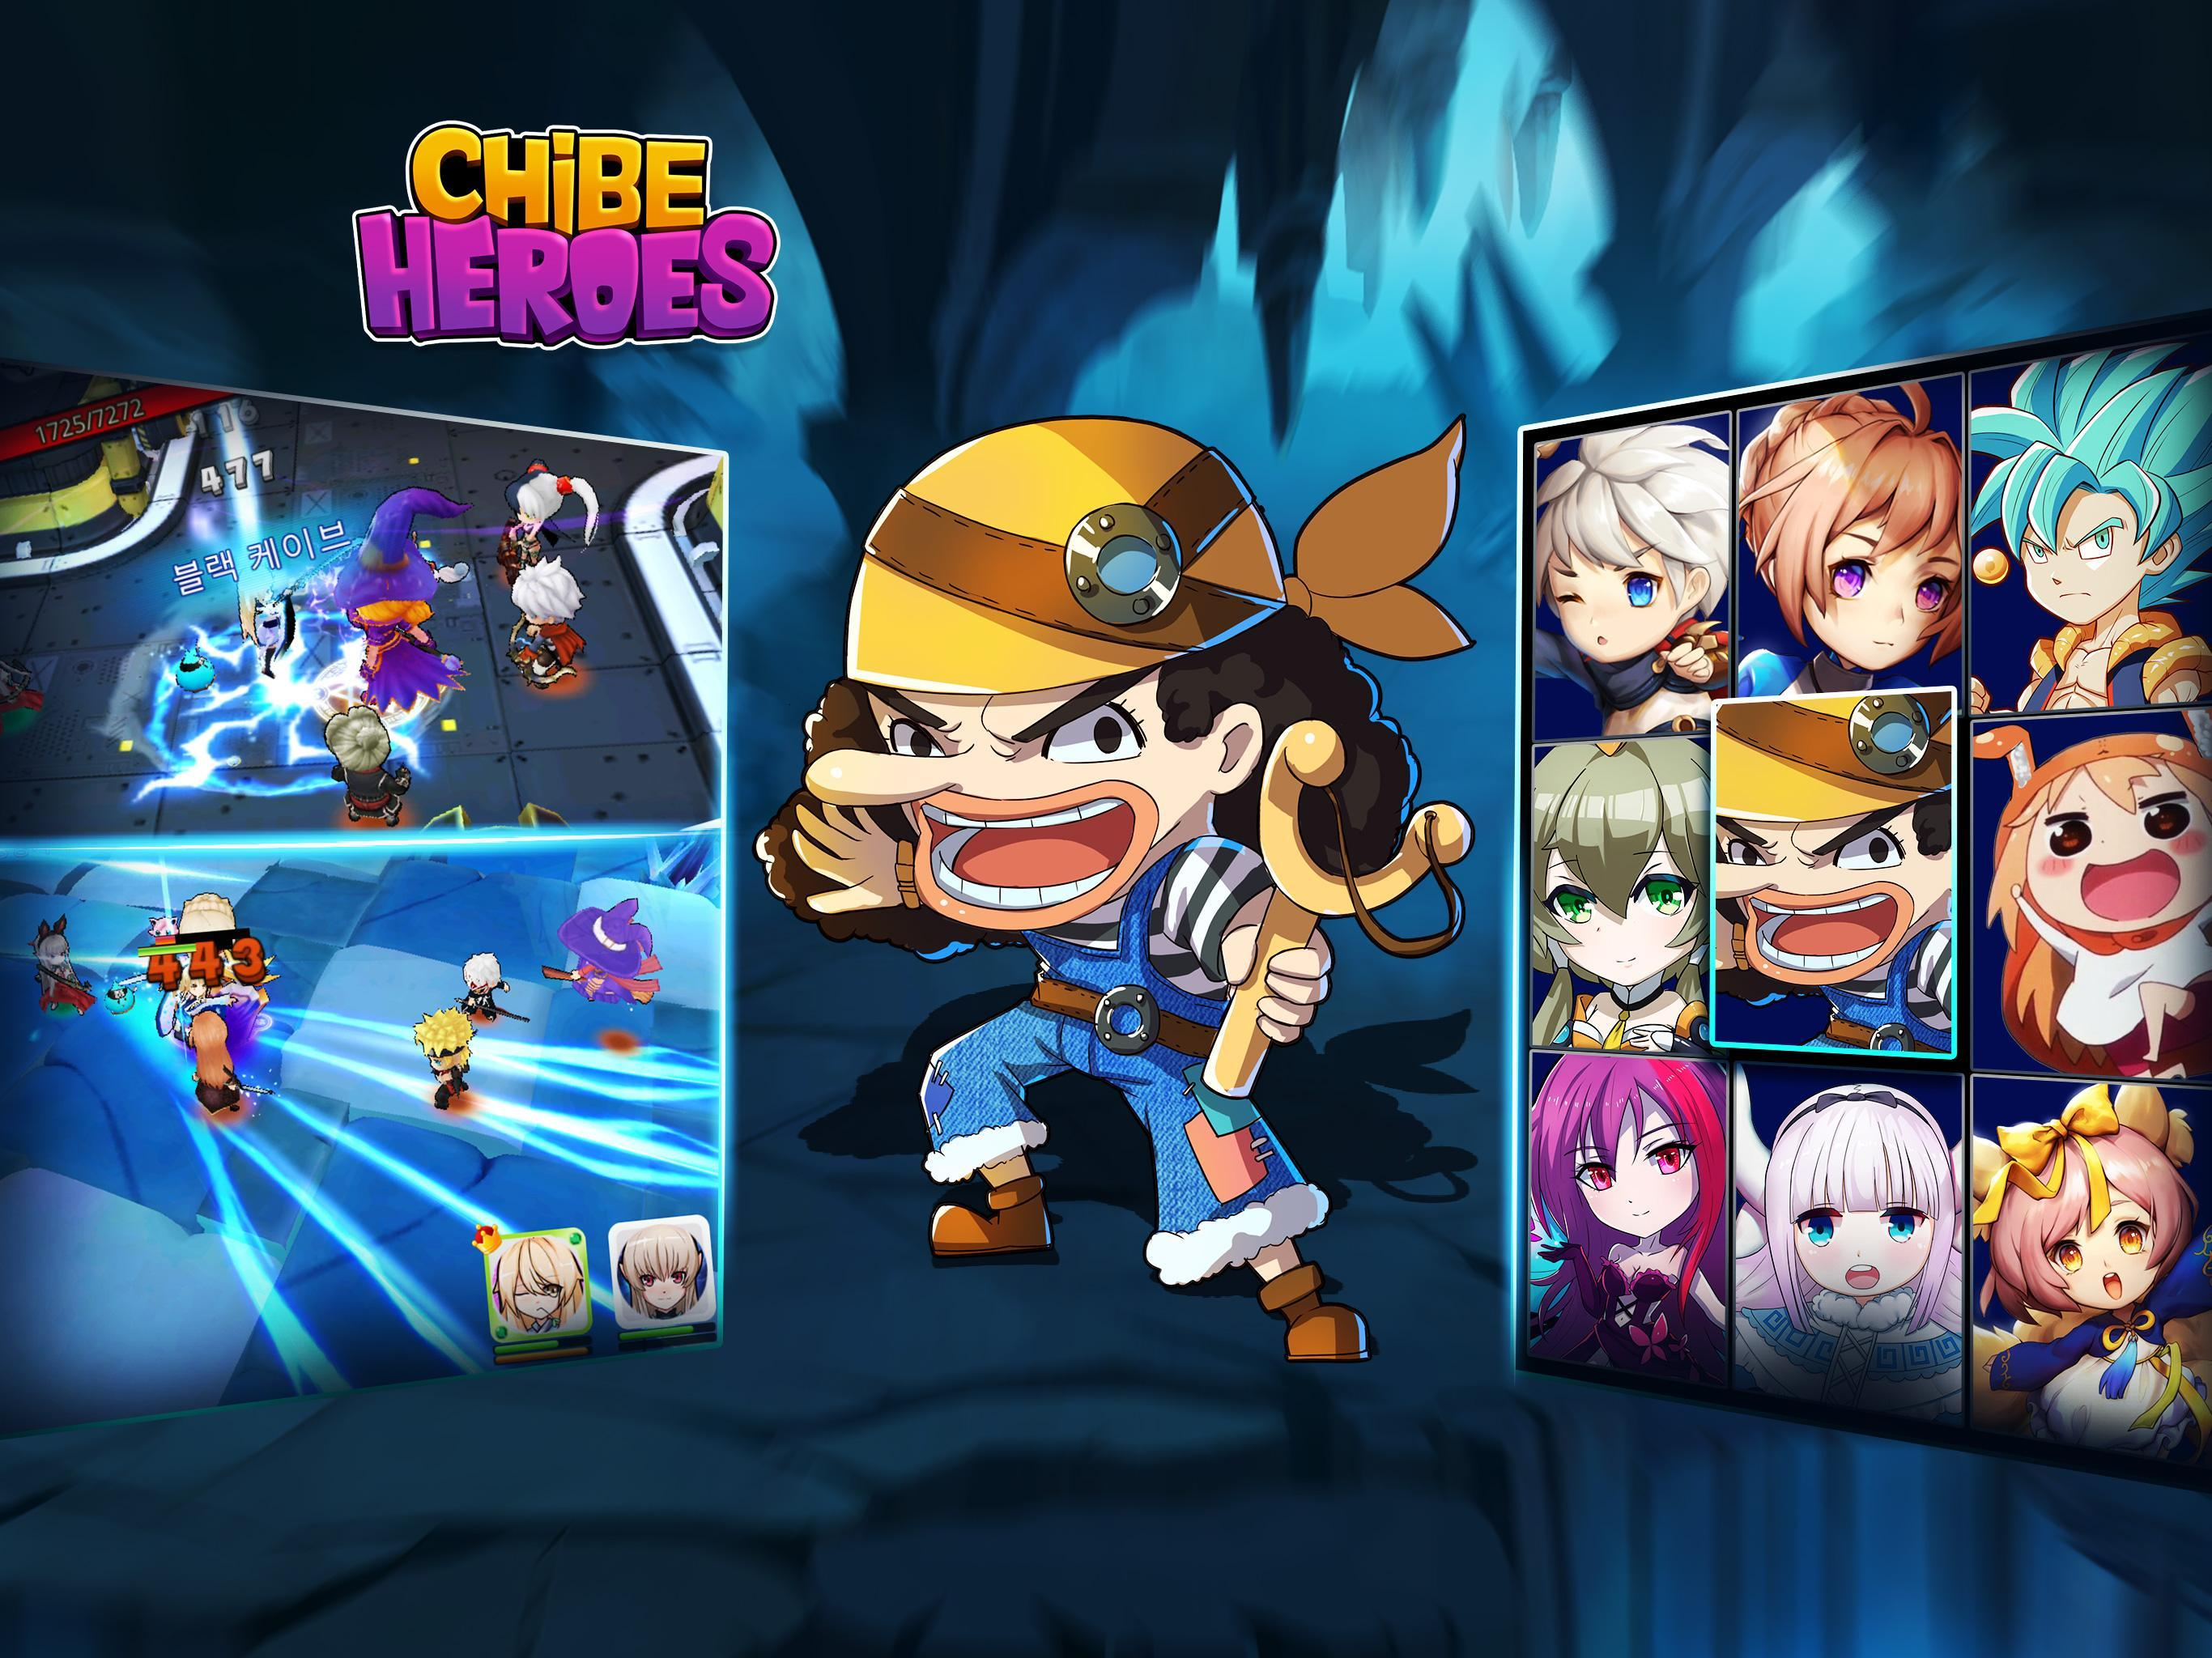 Chibi Heroes for Android - APK Download